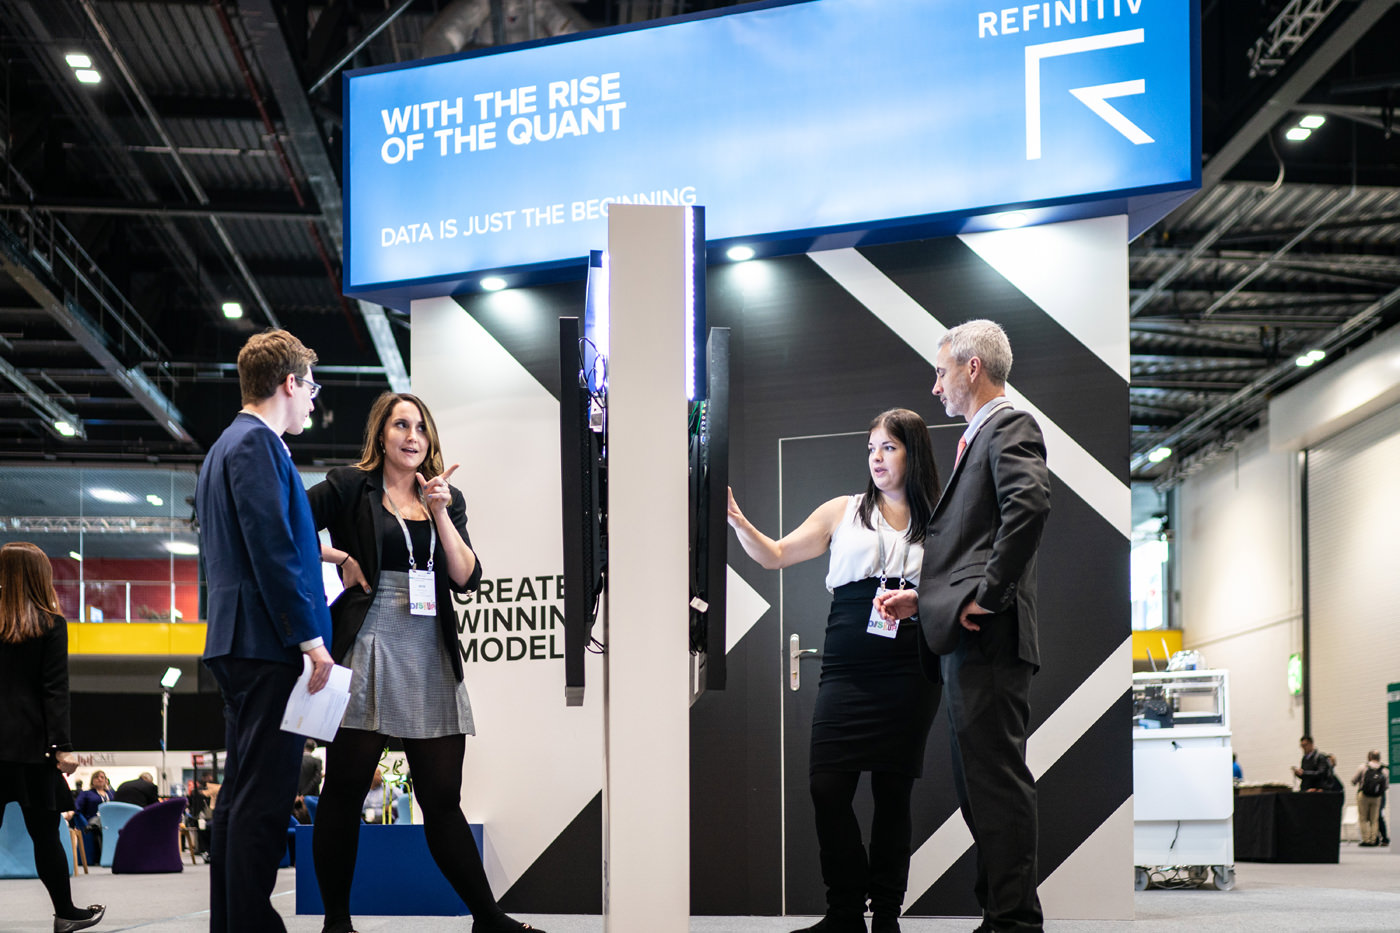 Delegates meeting with sponsor Refinitiv at the CFA Conference in the Capital Hall at ExCel London